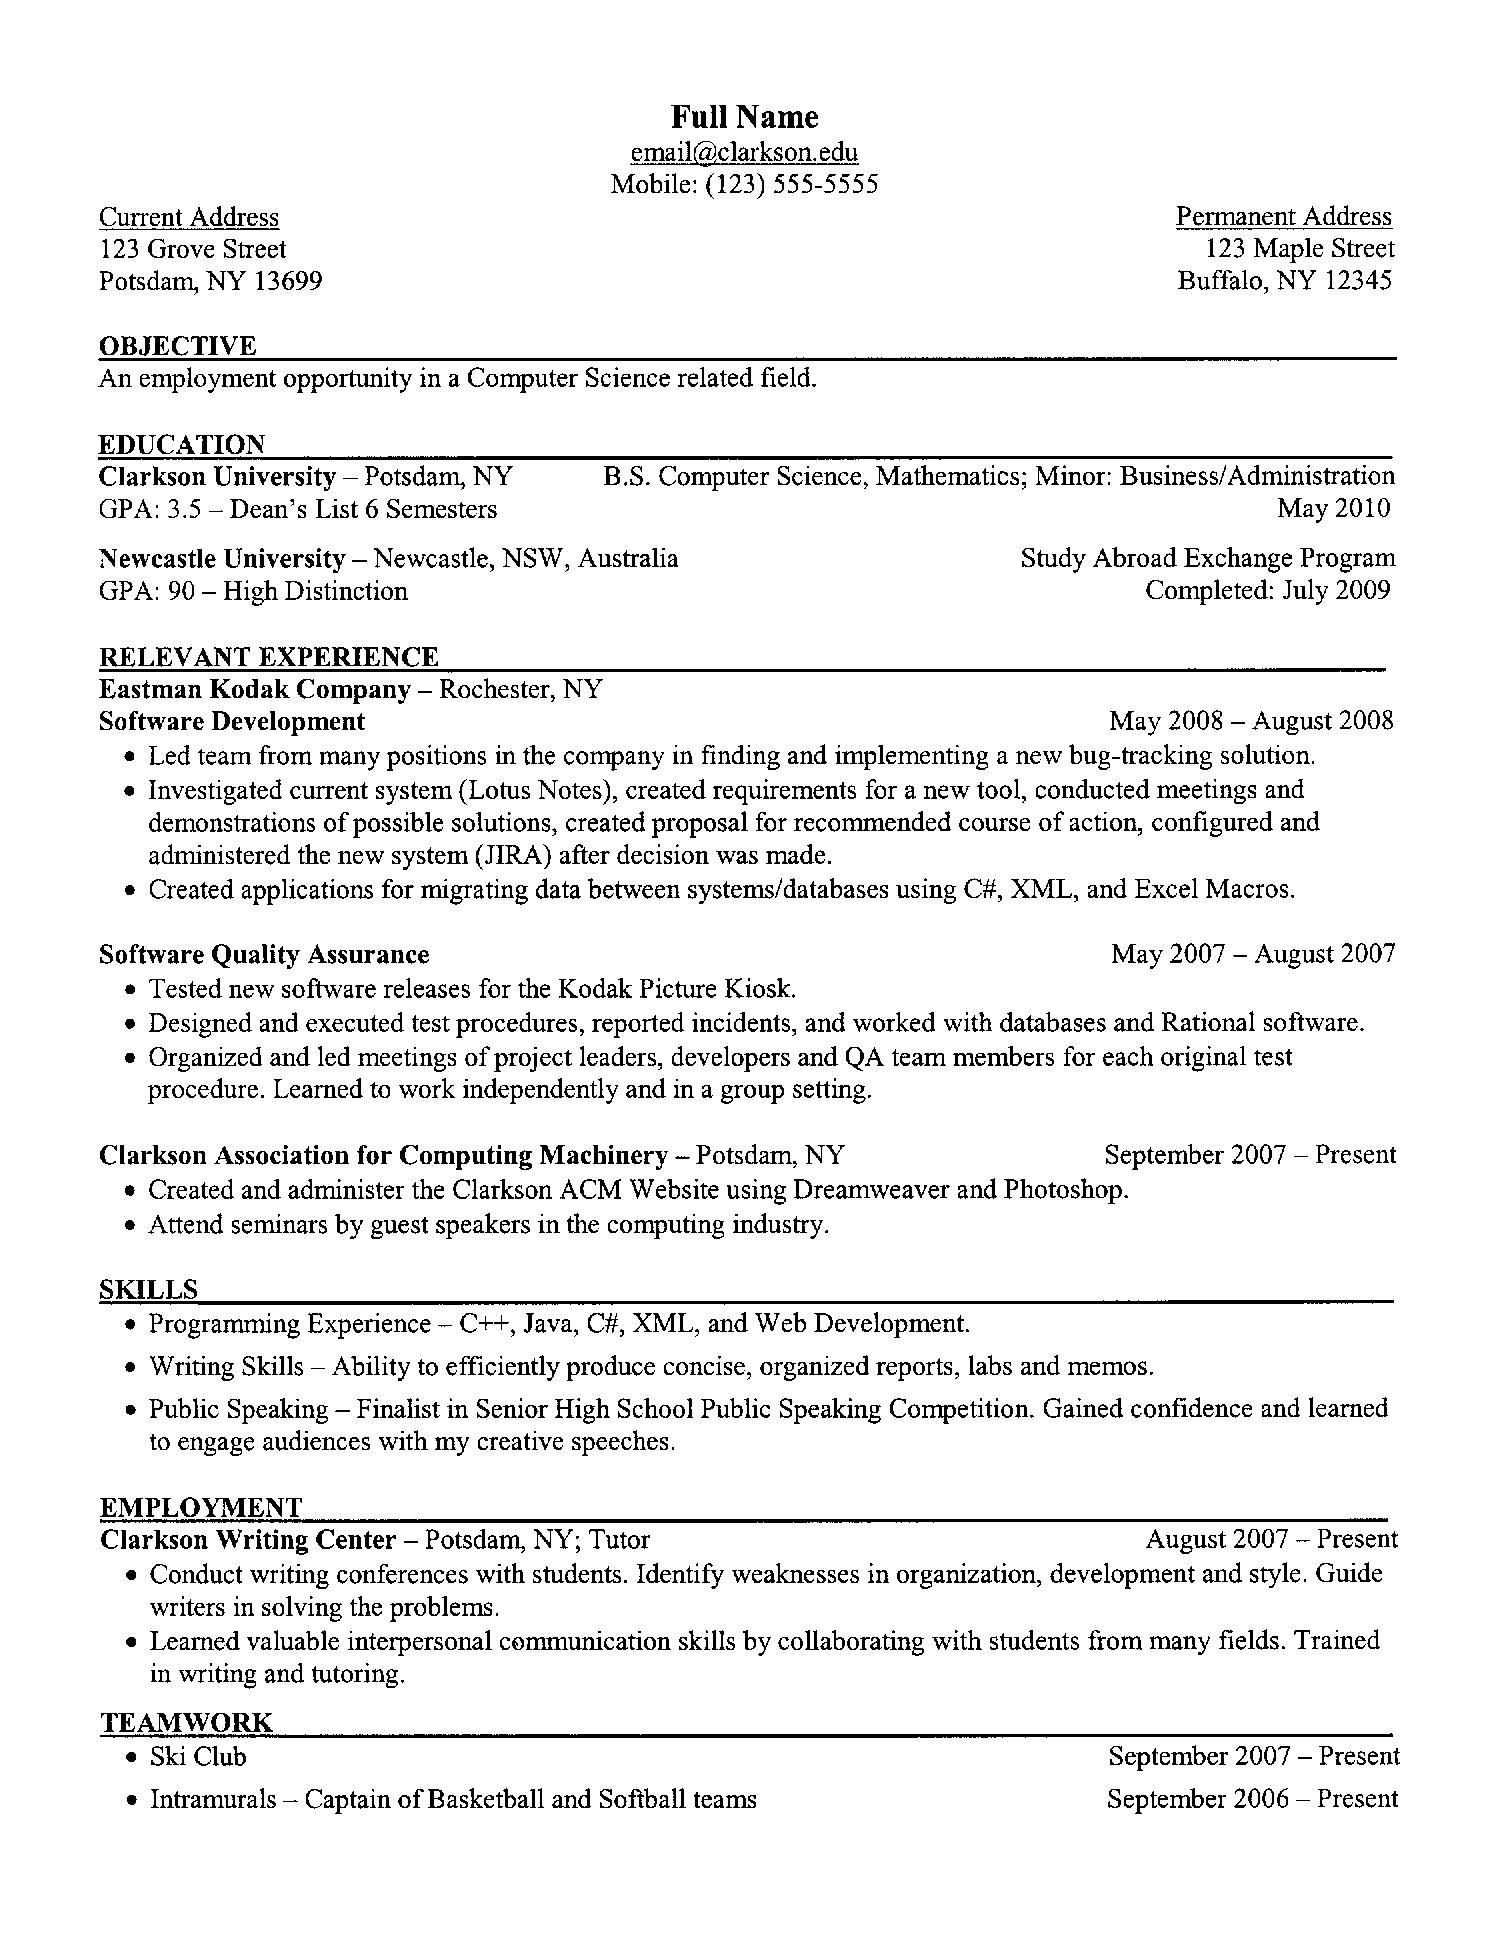 free resume templates computer science skills student examples sample conflict resolution Resume Sample Computer Science Resume